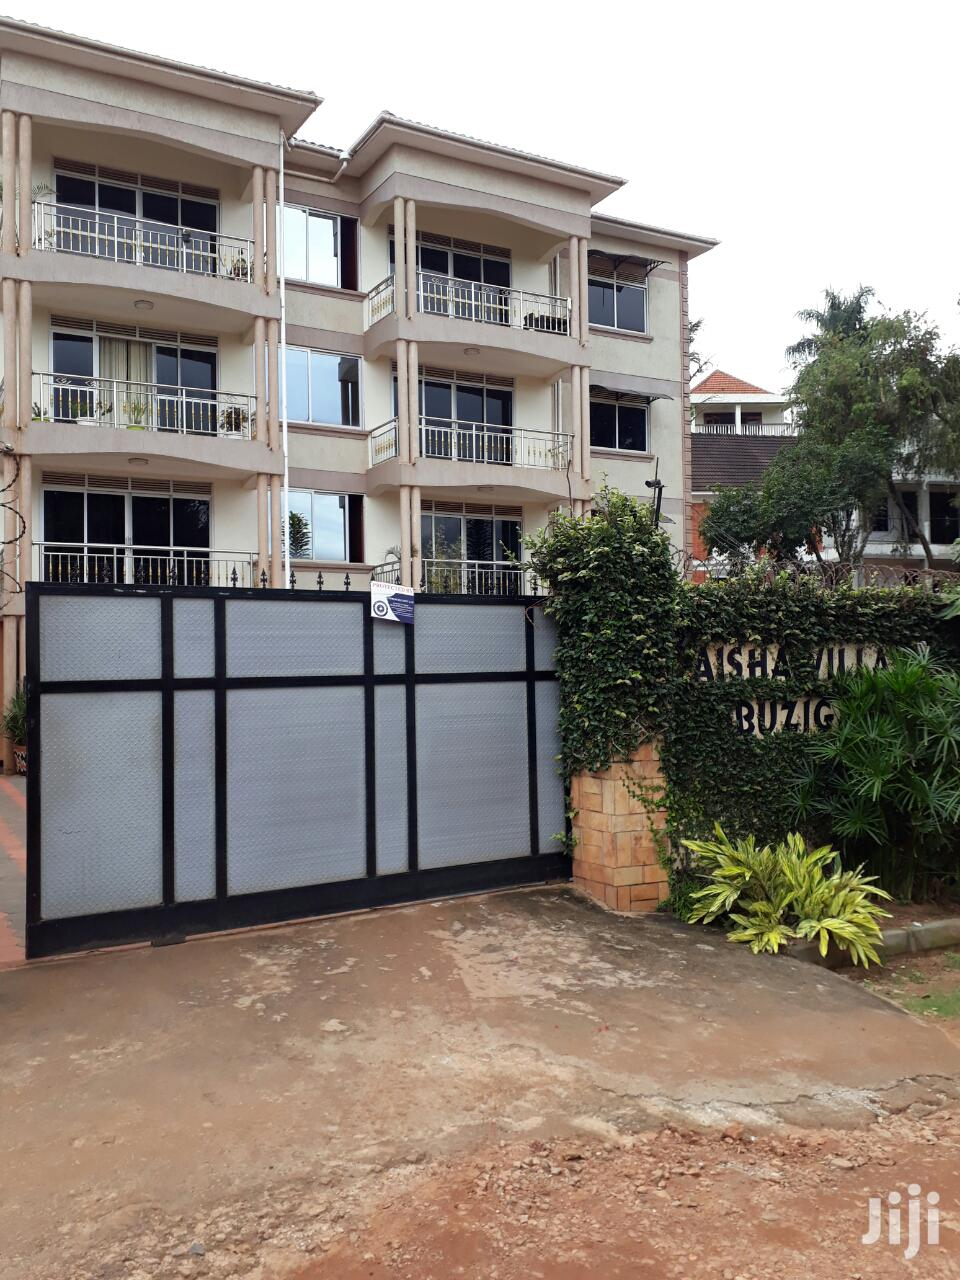 Furnished Houses At Munyonyo Buziga In A Well Developed And Accessible | Houses & Apartments For Rent for sale in Kampala, Central Region, Uganda